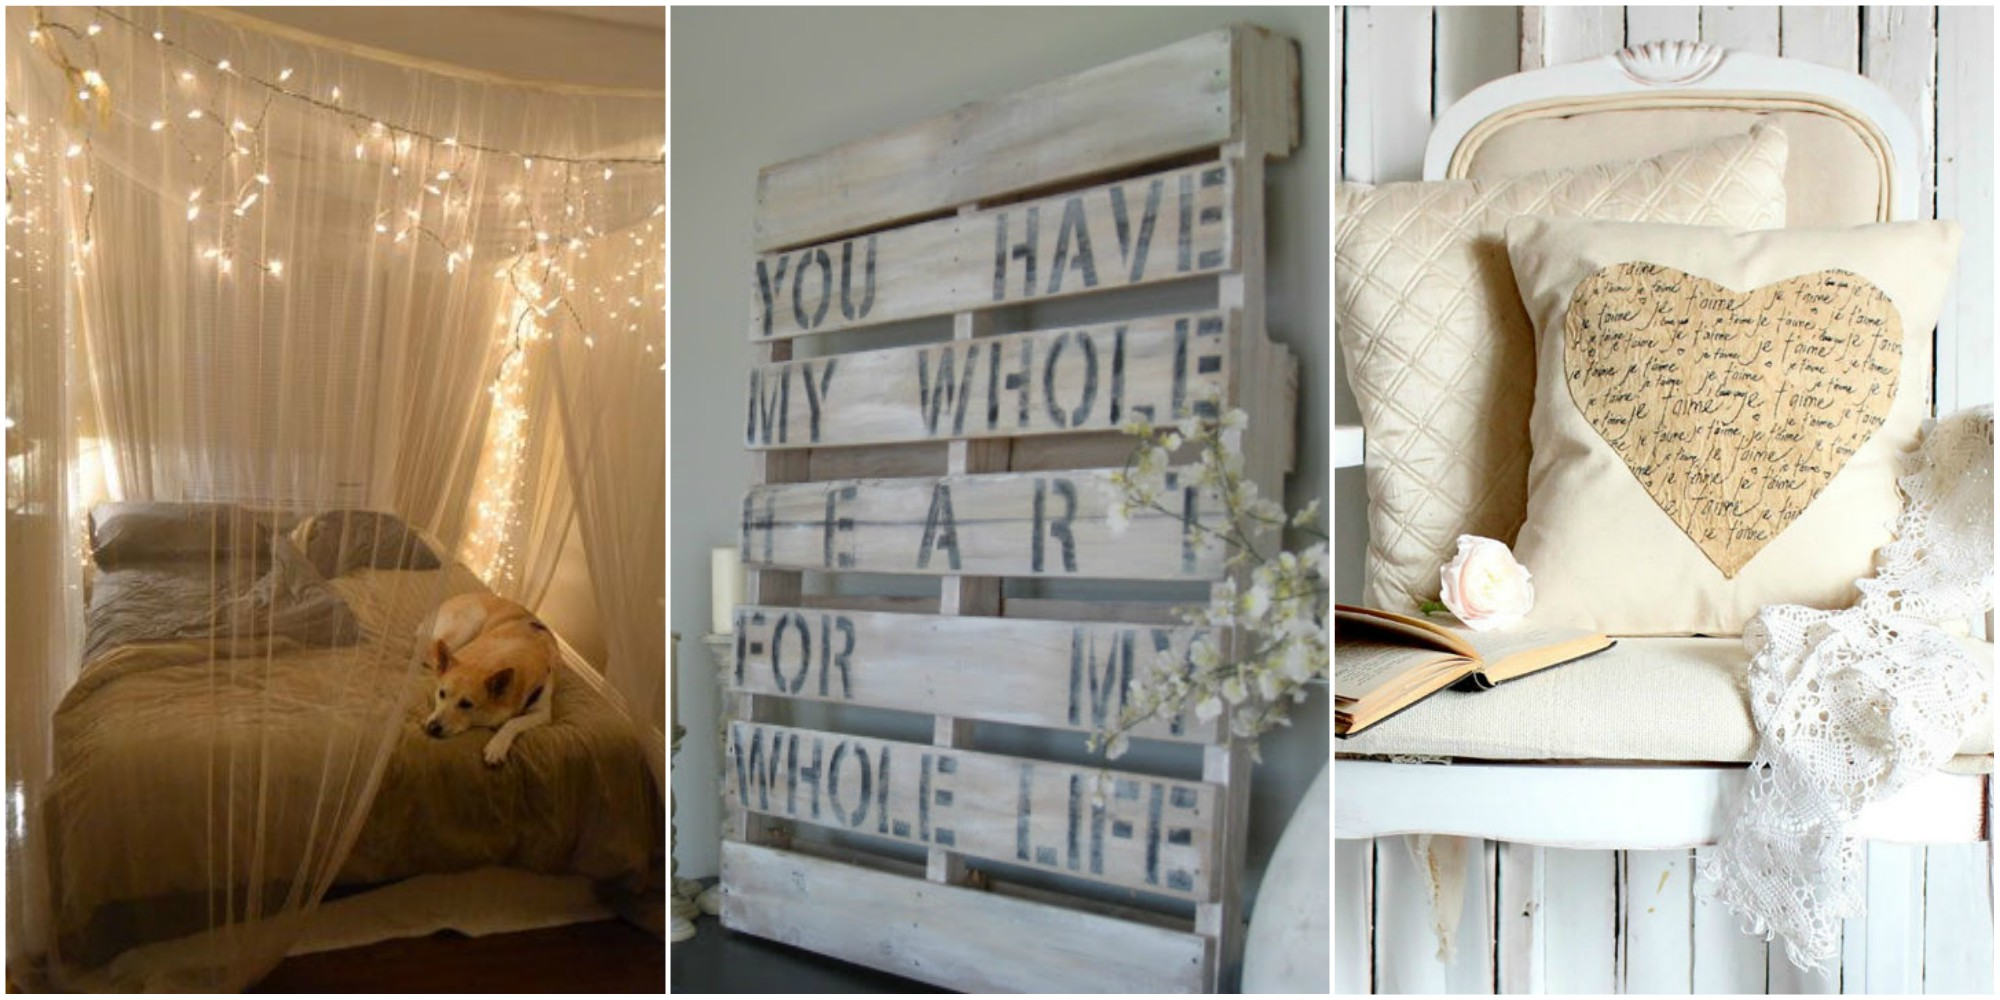 21 diy romantic bedroom decorating ideas country living for Diy small bedroom decor ideas